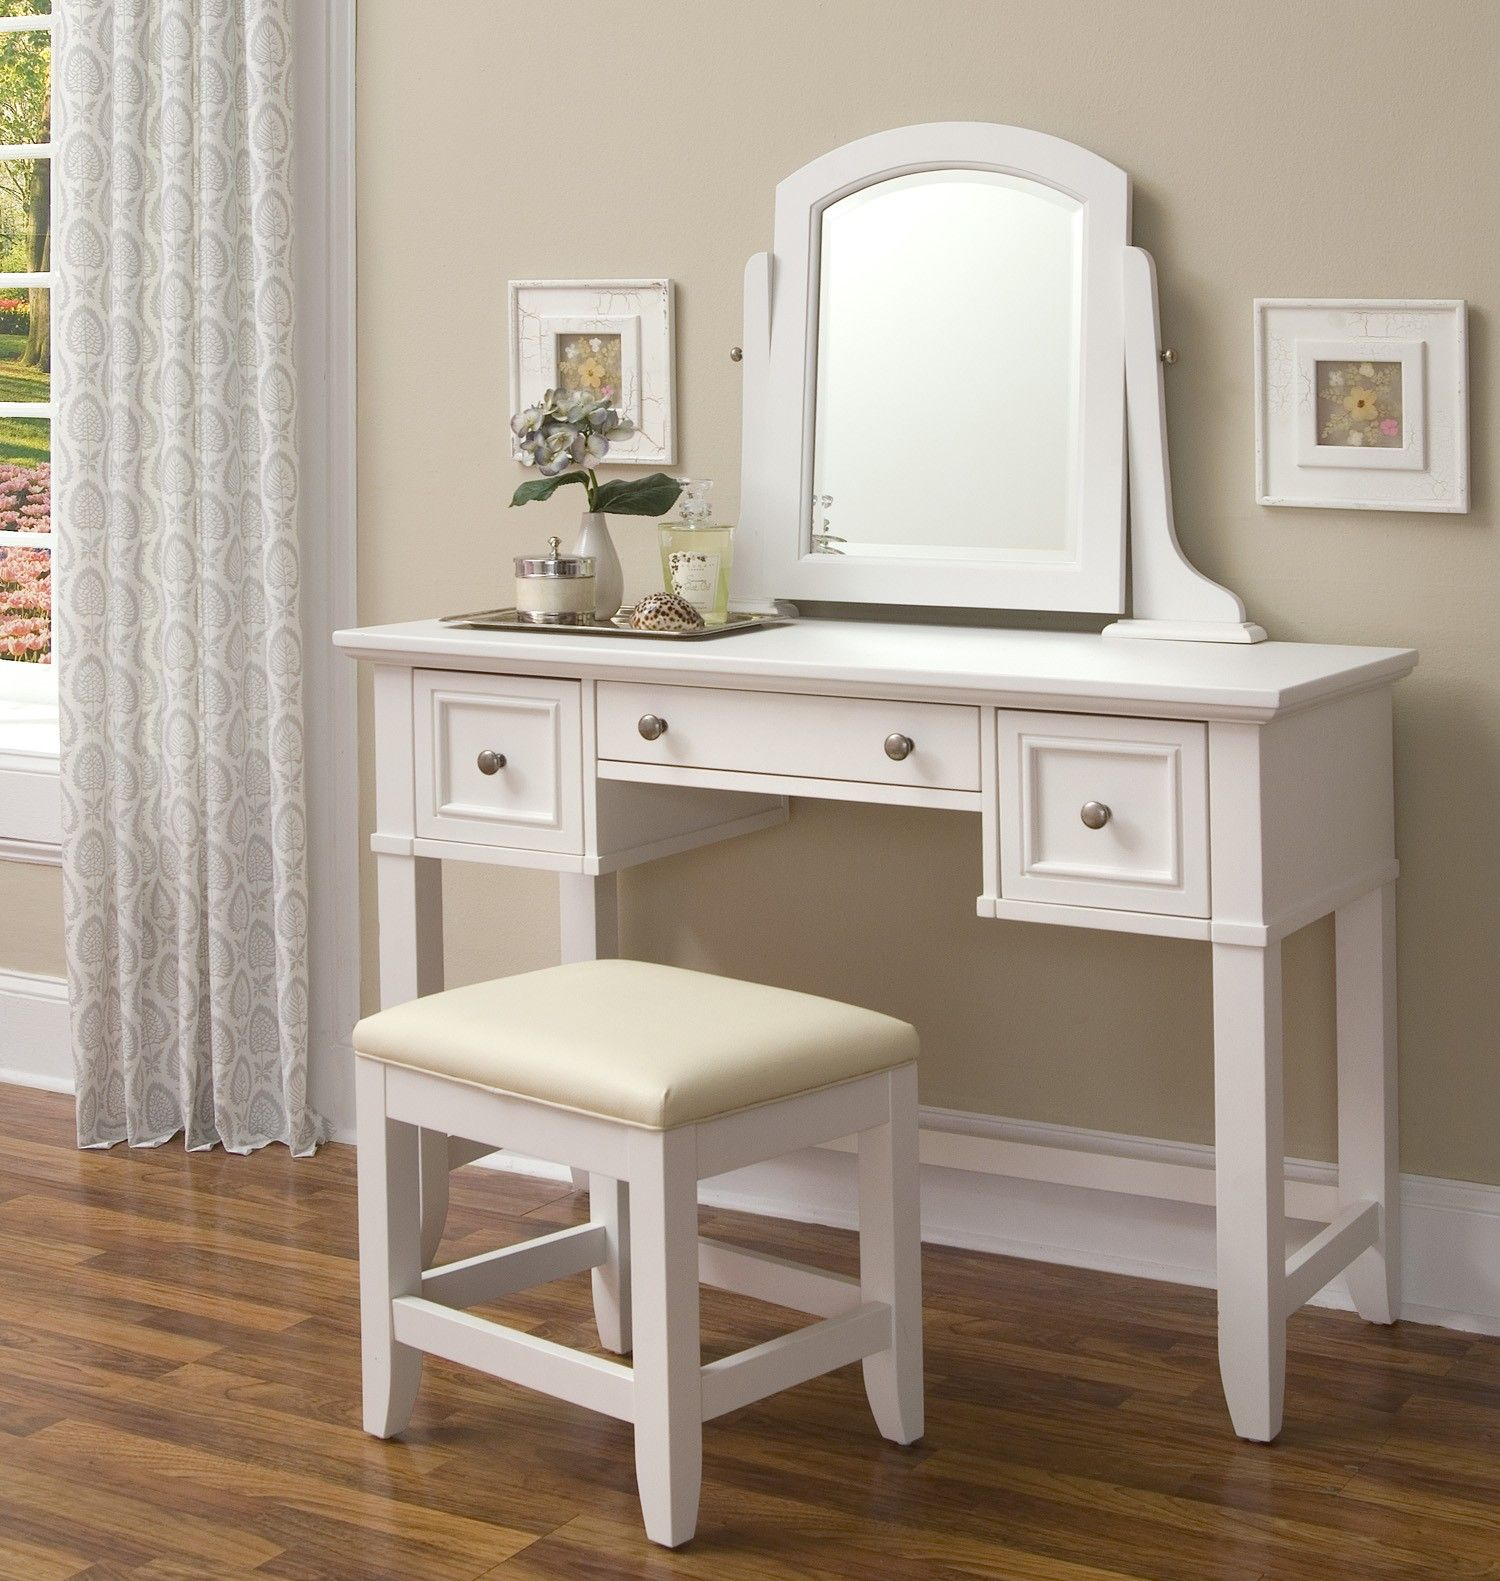 Dresser with mirror and chair - Cool White Makeup Vanity Table With Single Mirror And Three Drawer Storage Feat Bench On Wooden